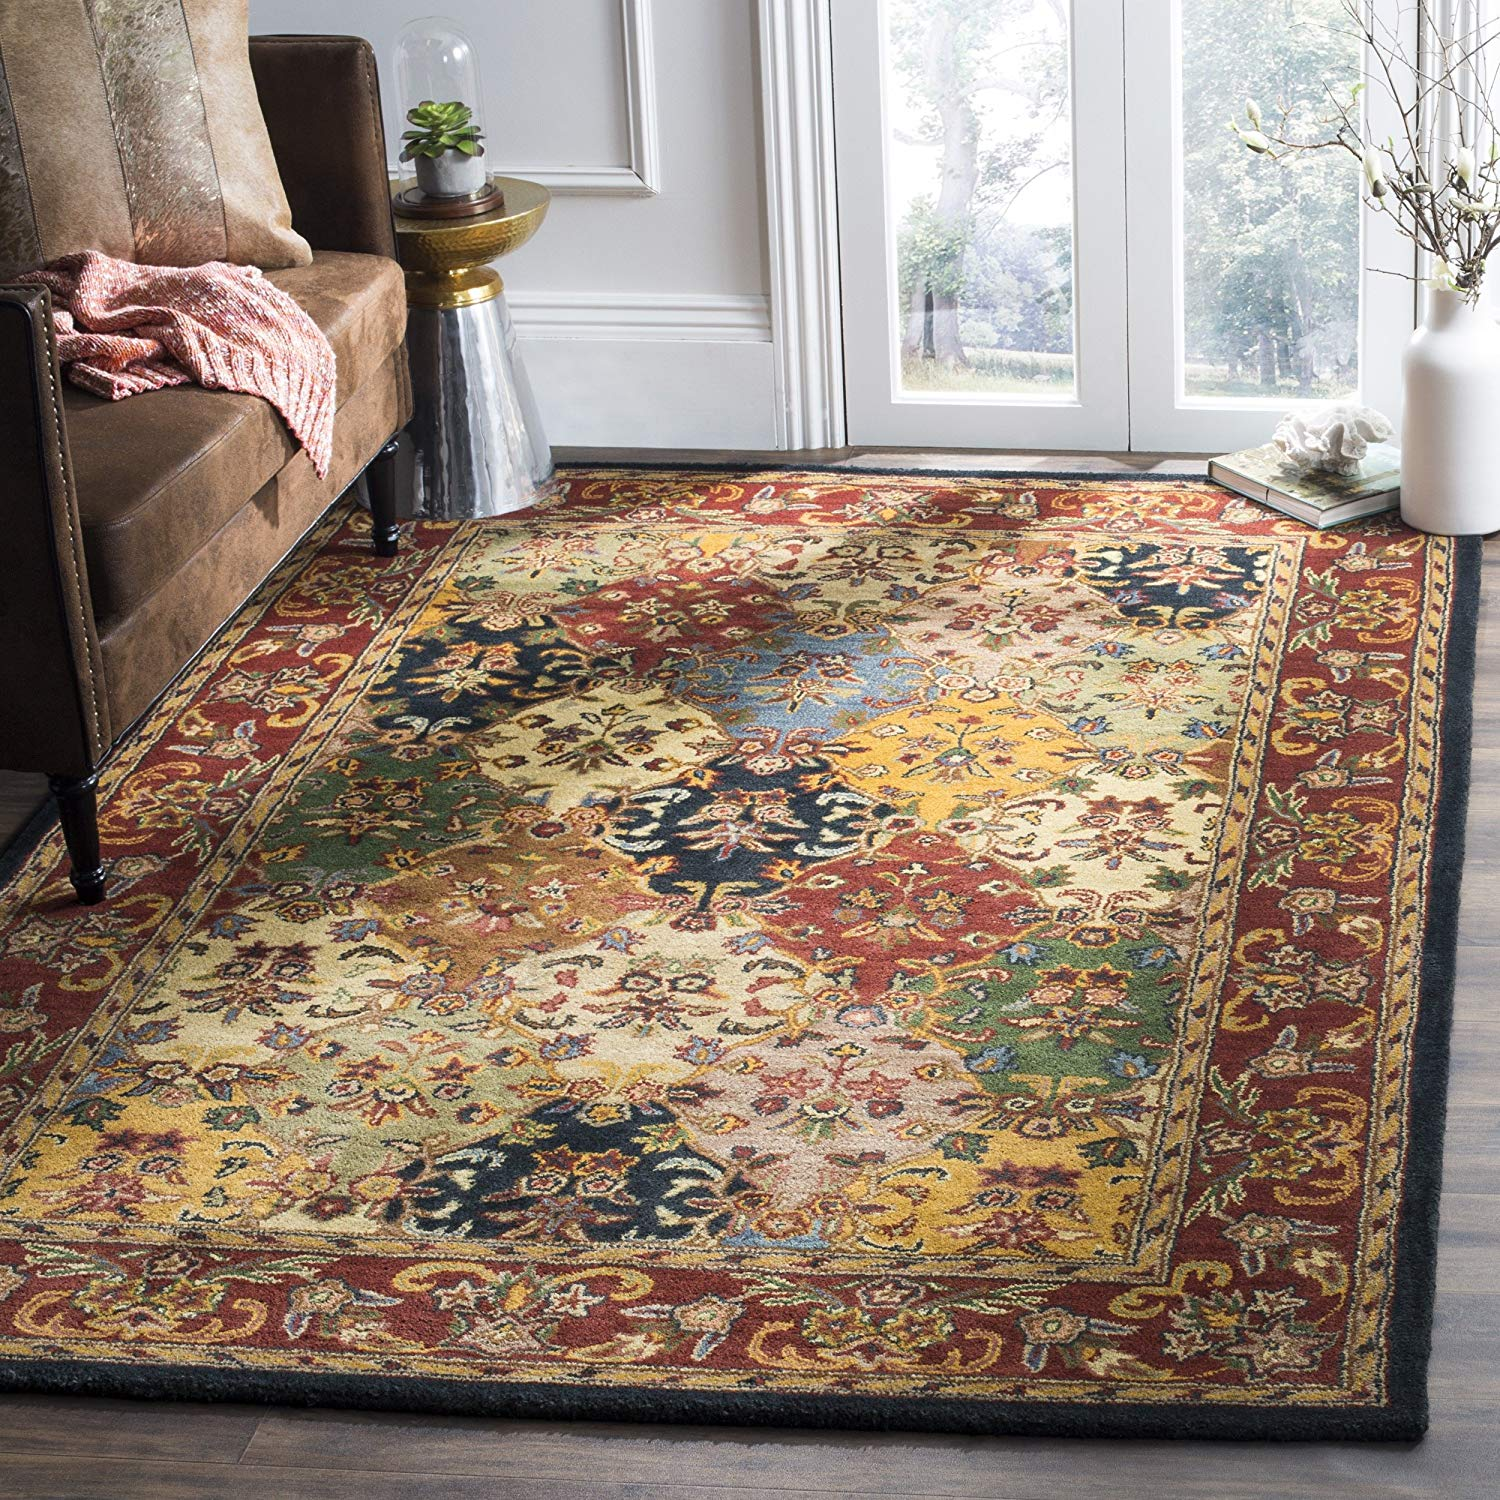 Safavieh Heritage Collection Handcrafted Traditional Oriental Multi and Burgundy Wool Area Rug